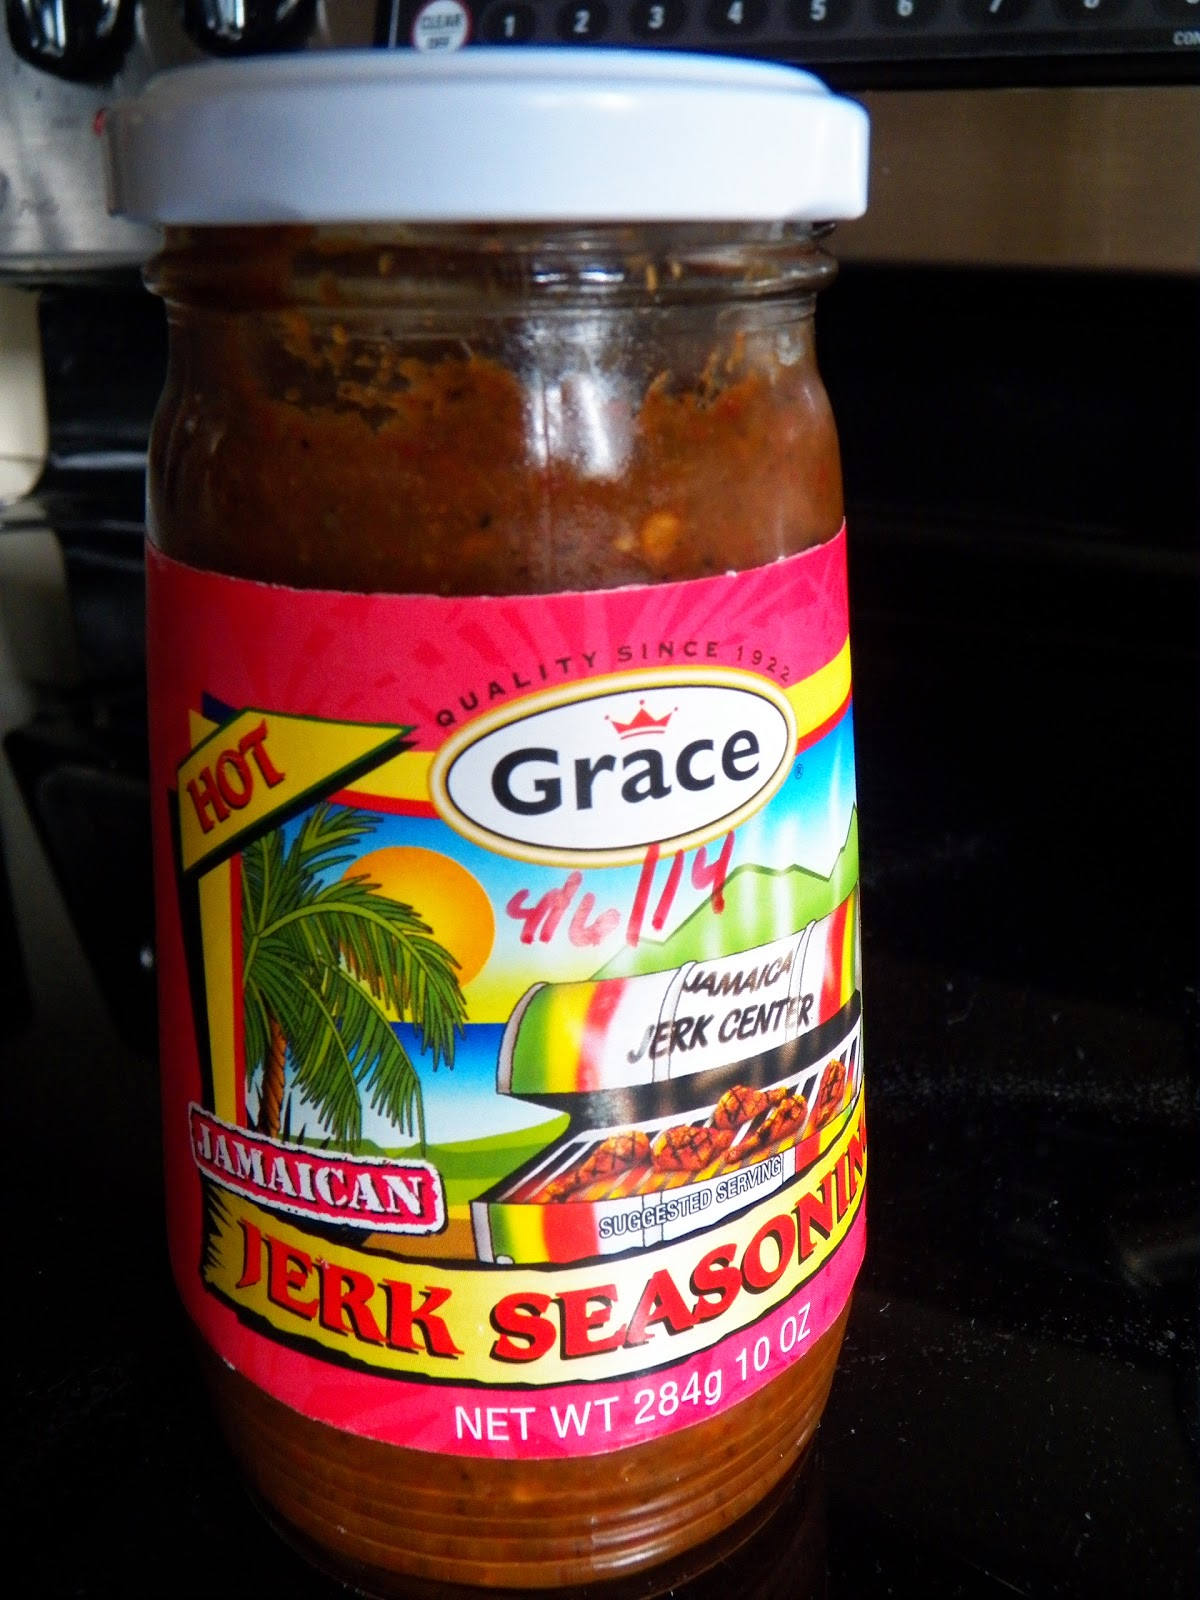 a jar of Jamaican jerk seasoning